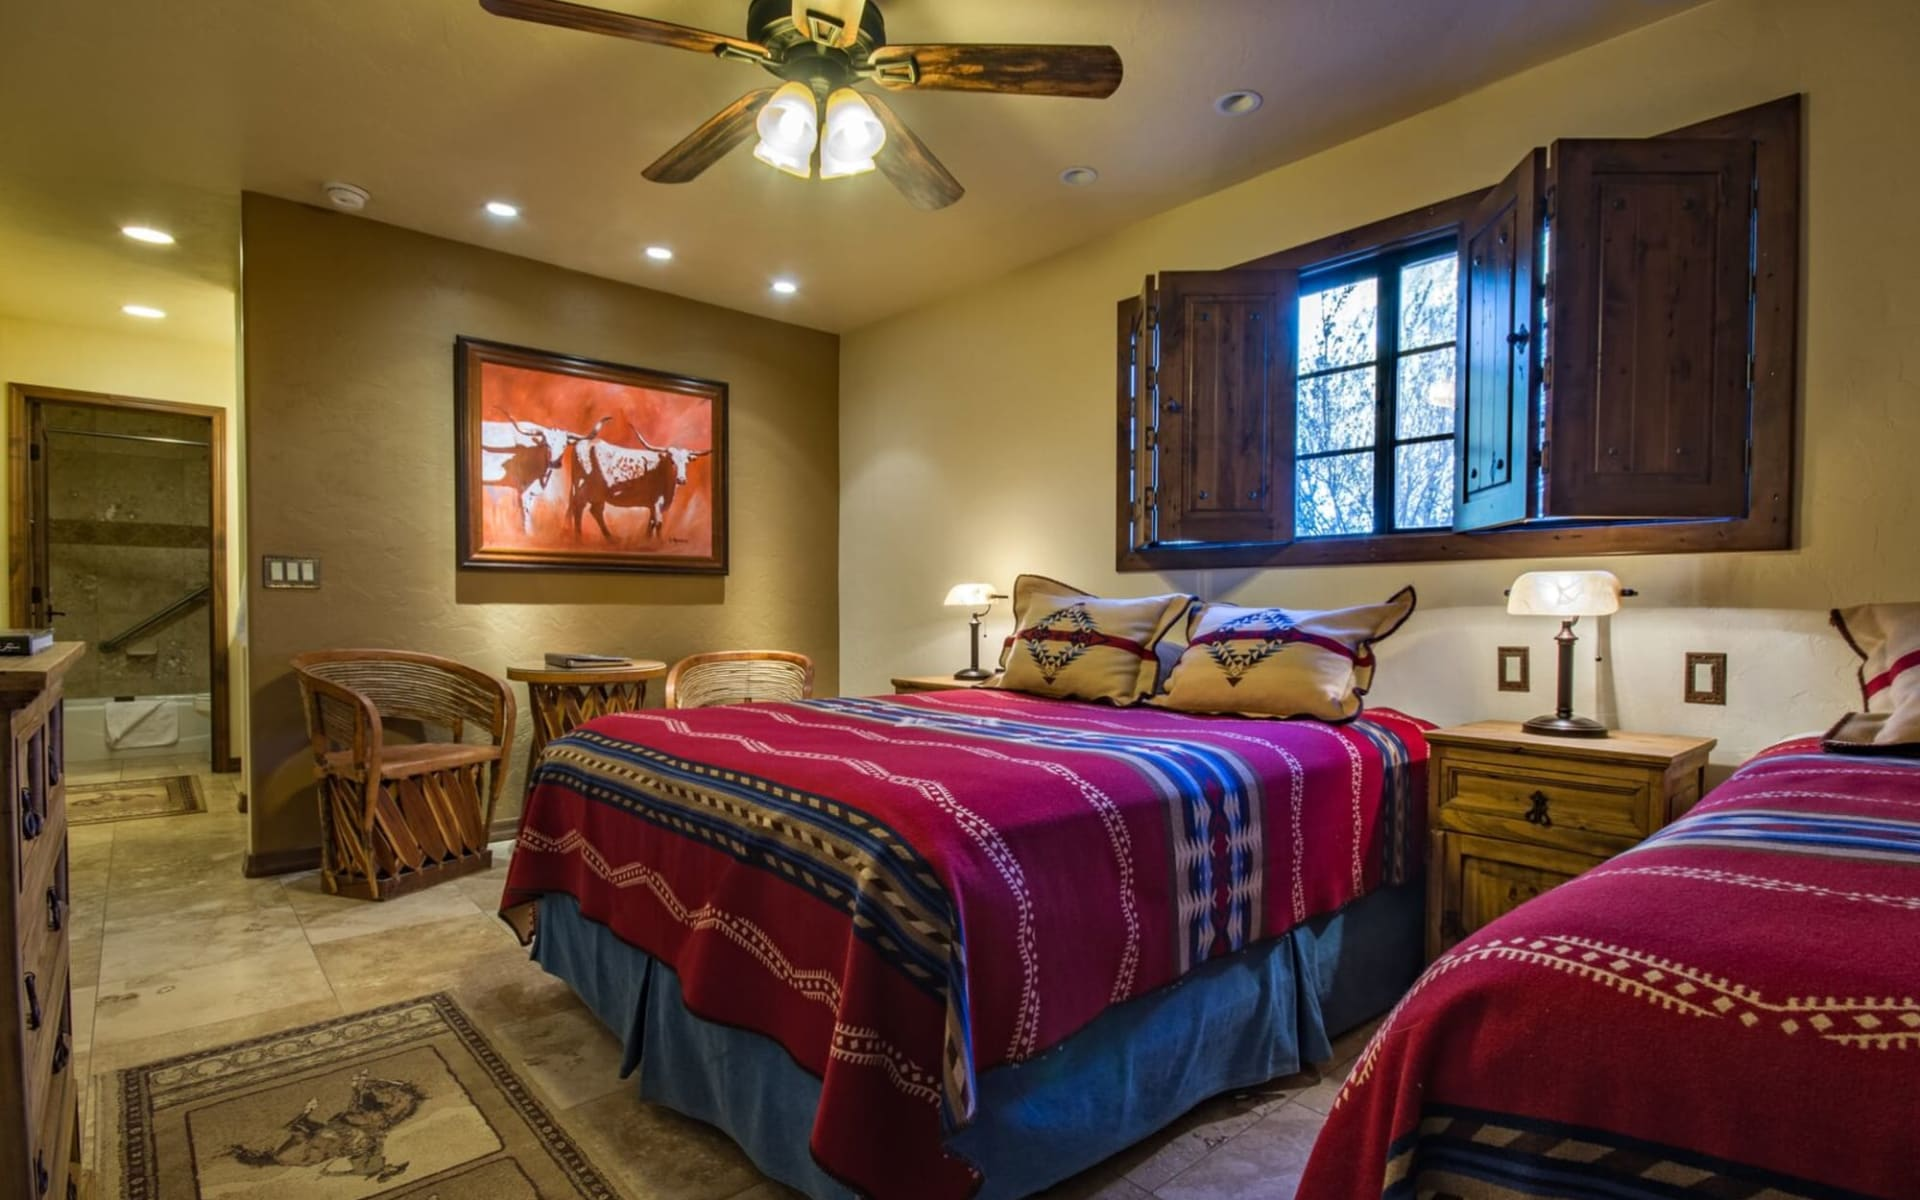 White Stallion Ranch in Tucson: White Stallion Ranch - Guest Room with two Queens